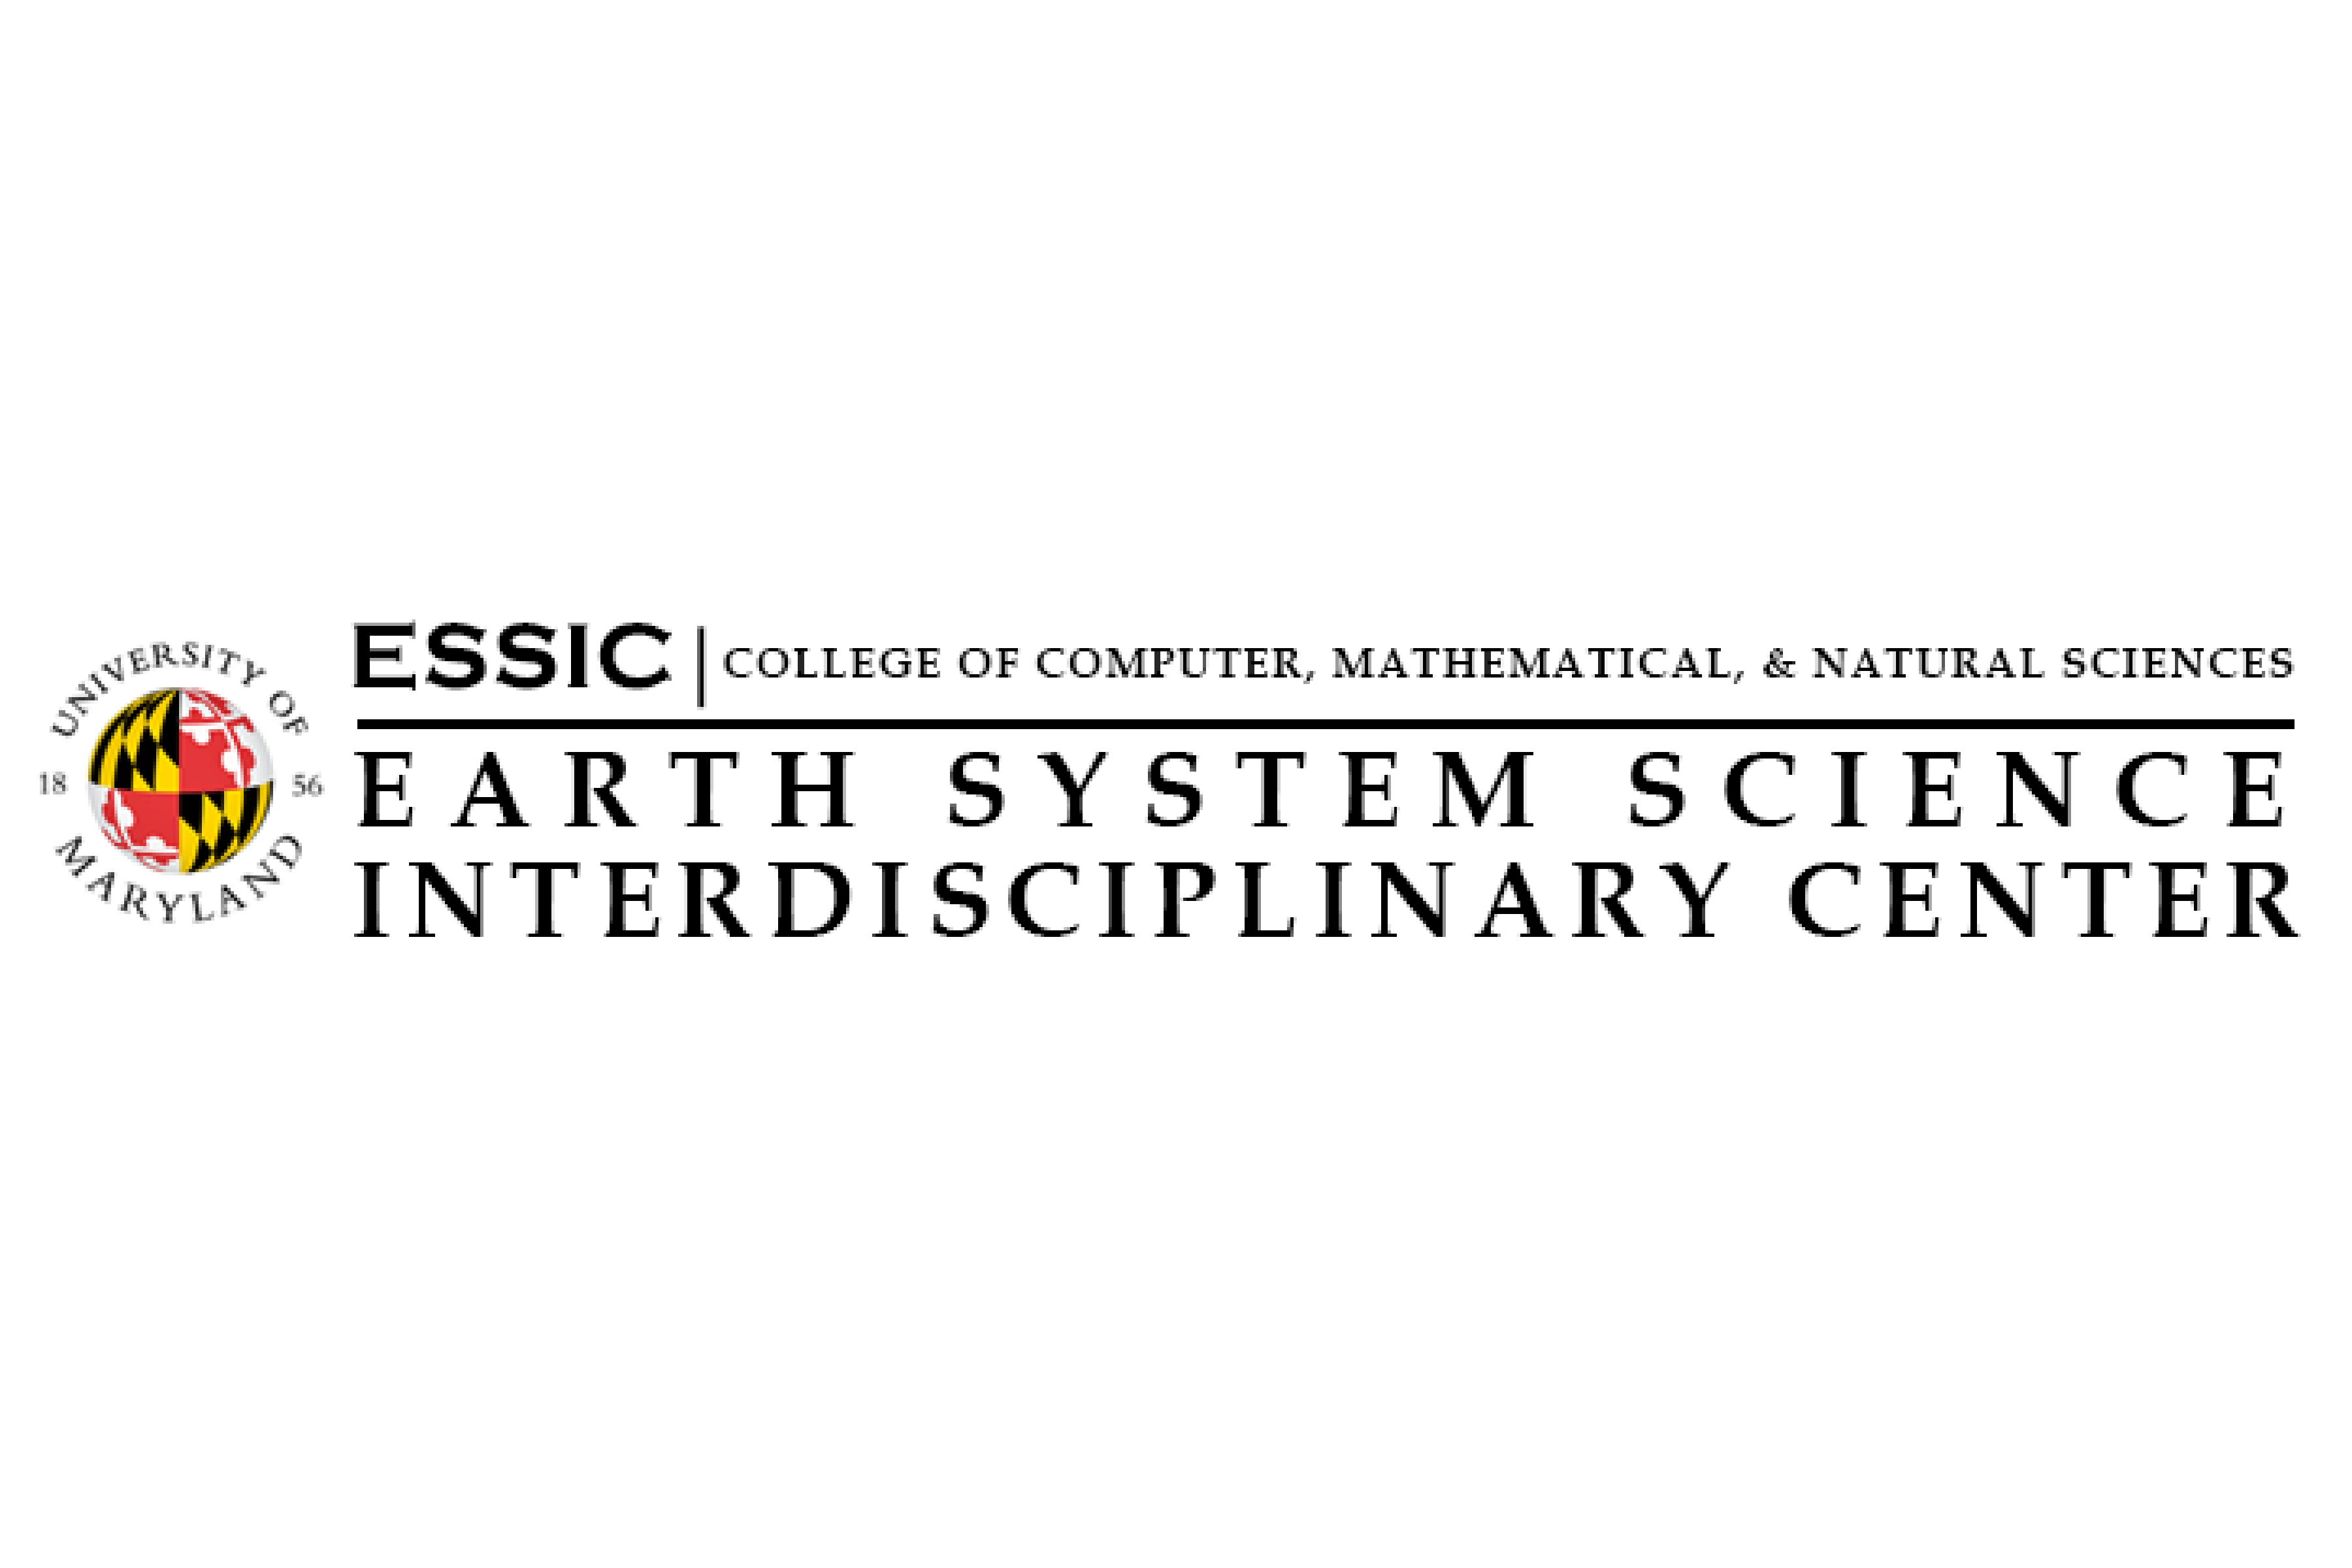 Earth System Science Interdisciplinary Center